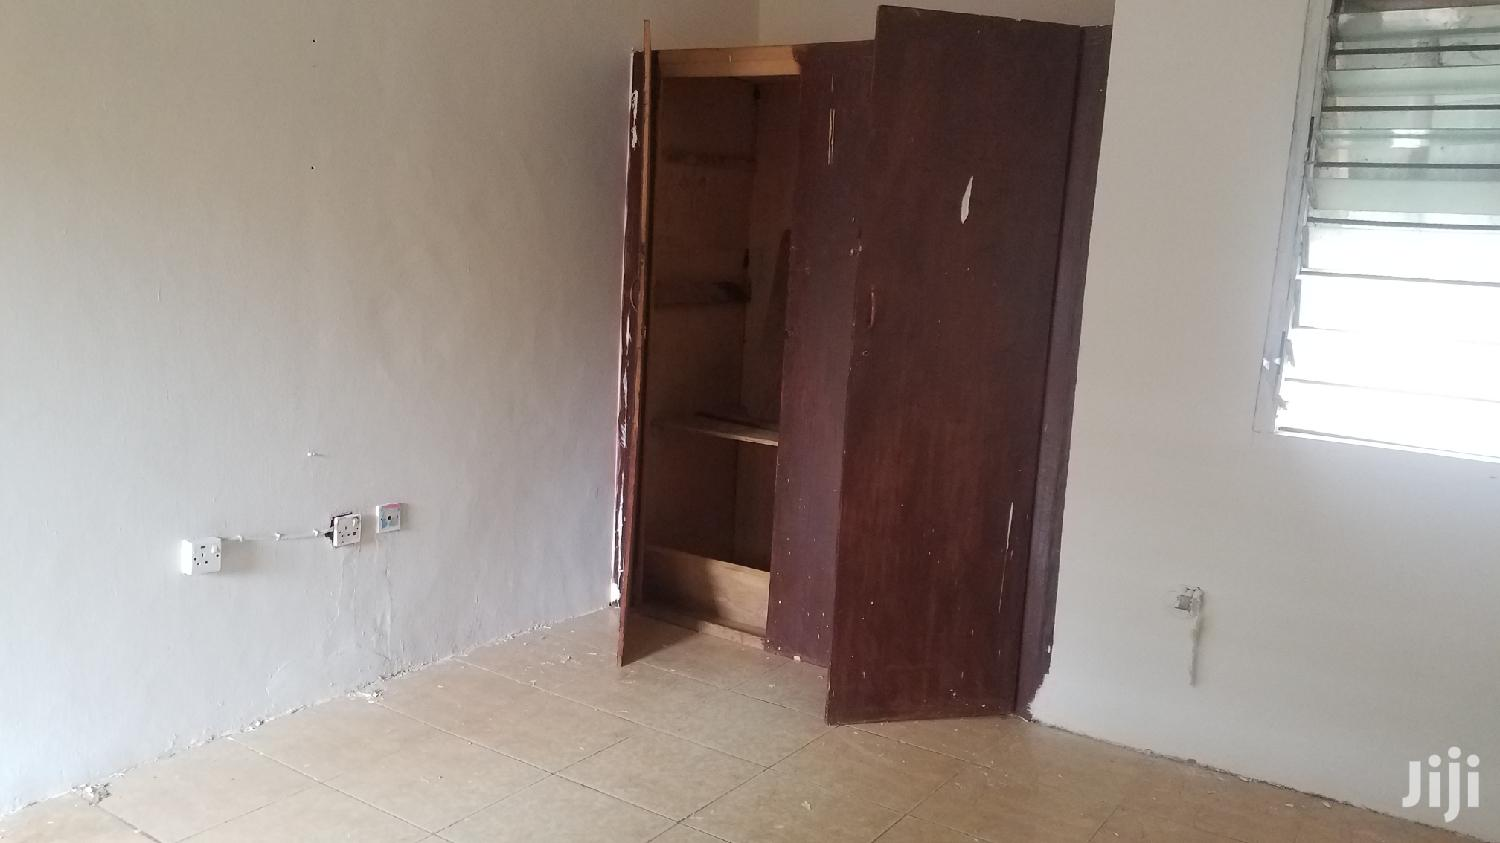 Nice Single Room S/C for Rent at Block Factory